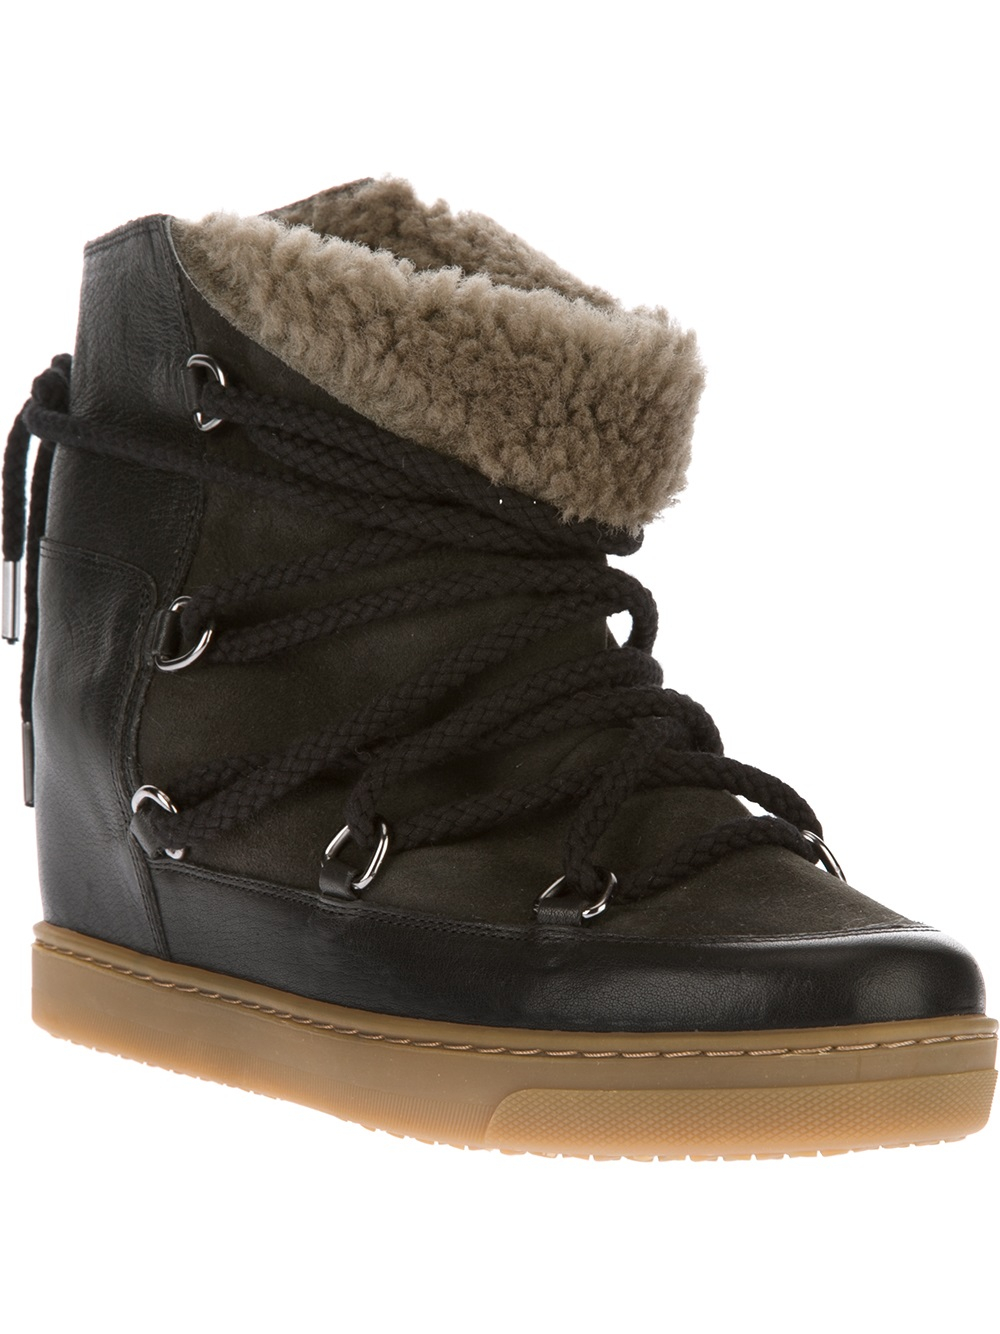 isabel marant nowles snow boot in black lyst. Black Bedroom Furniture Sets. Home Design Ideas